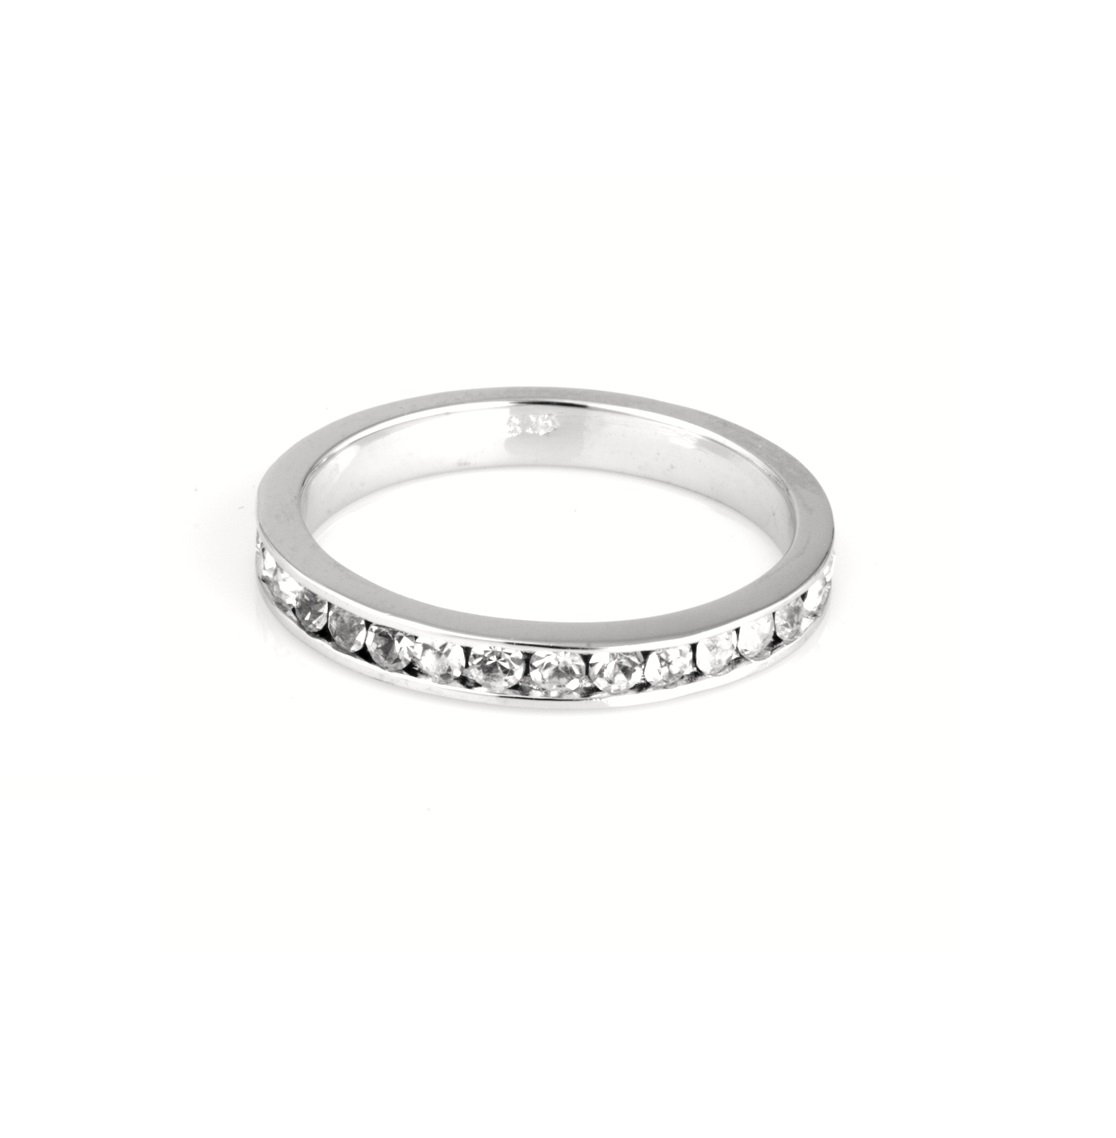 925 Sterling Silver Eternity Ring Cubic Zirconia Simulated Diamond 3MM Size 13